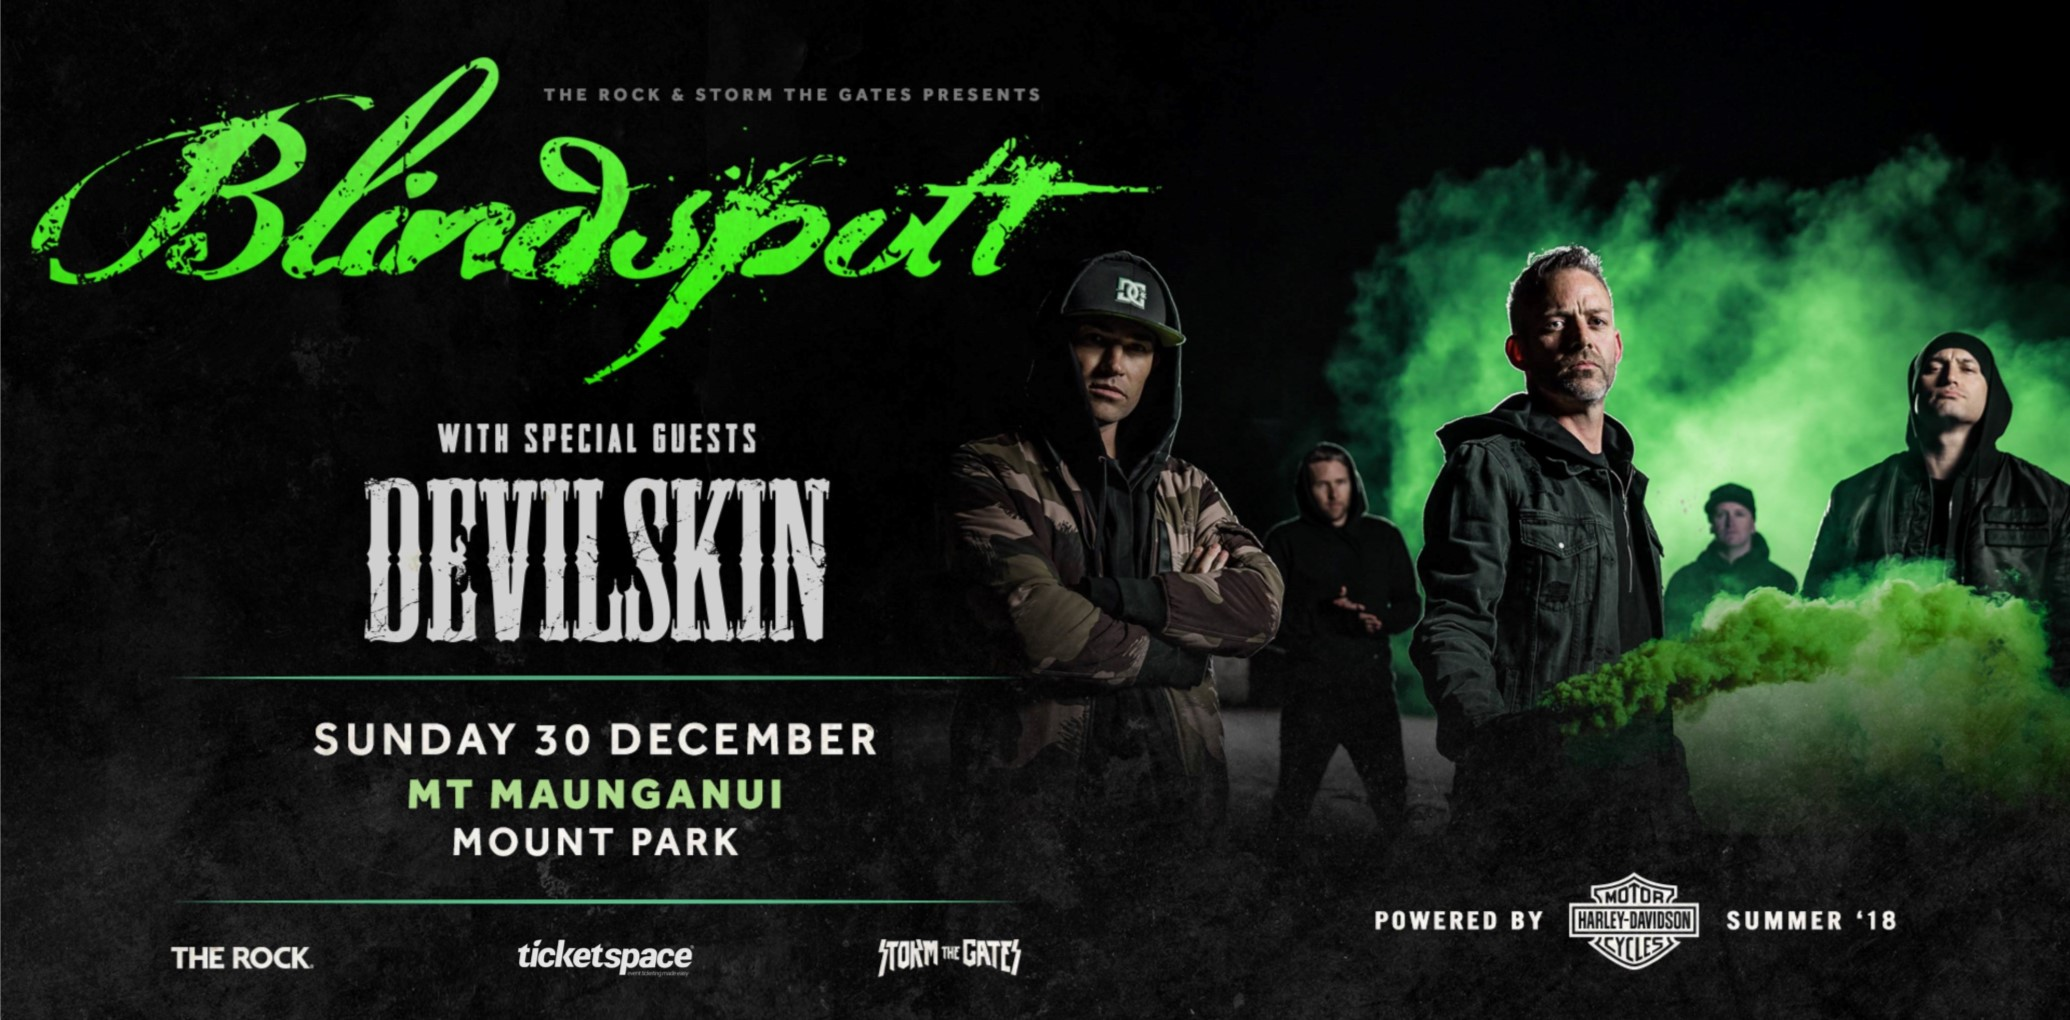 Tickets for BLINDSPOTT & DEVILSKIN - Mt. Maunganui in Mount Maunganui from Ticketspace